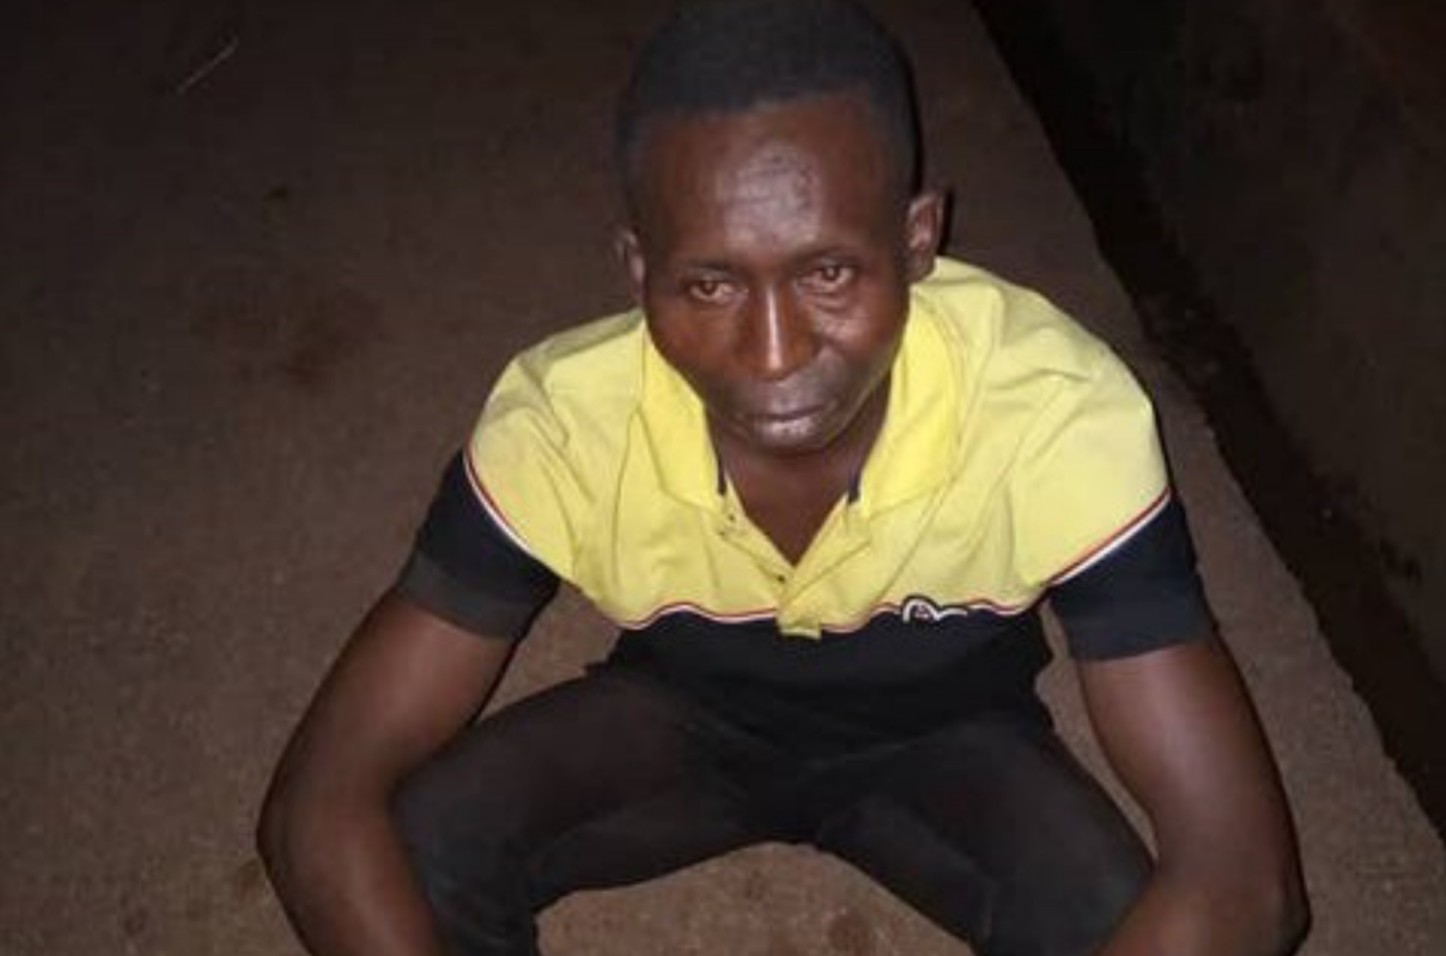 Painter arrested for sexually abusing 11 year old girl in Ebonyi